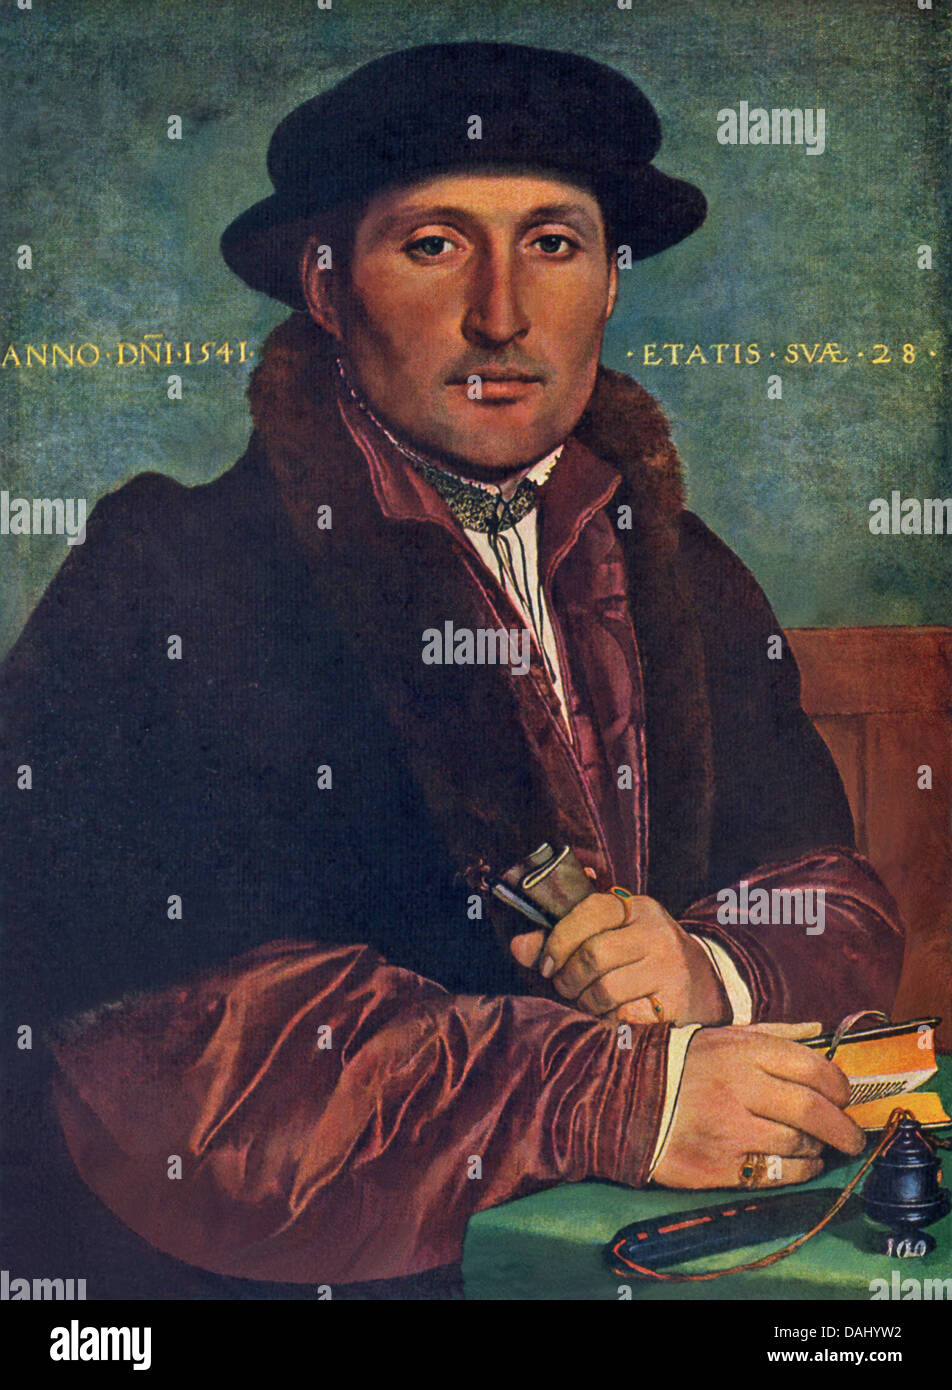 Portrait of a Man was paitned by Hans Holbein the Younger (1497-1543), an outstanding artist of the German Renaissance. - Stock Image